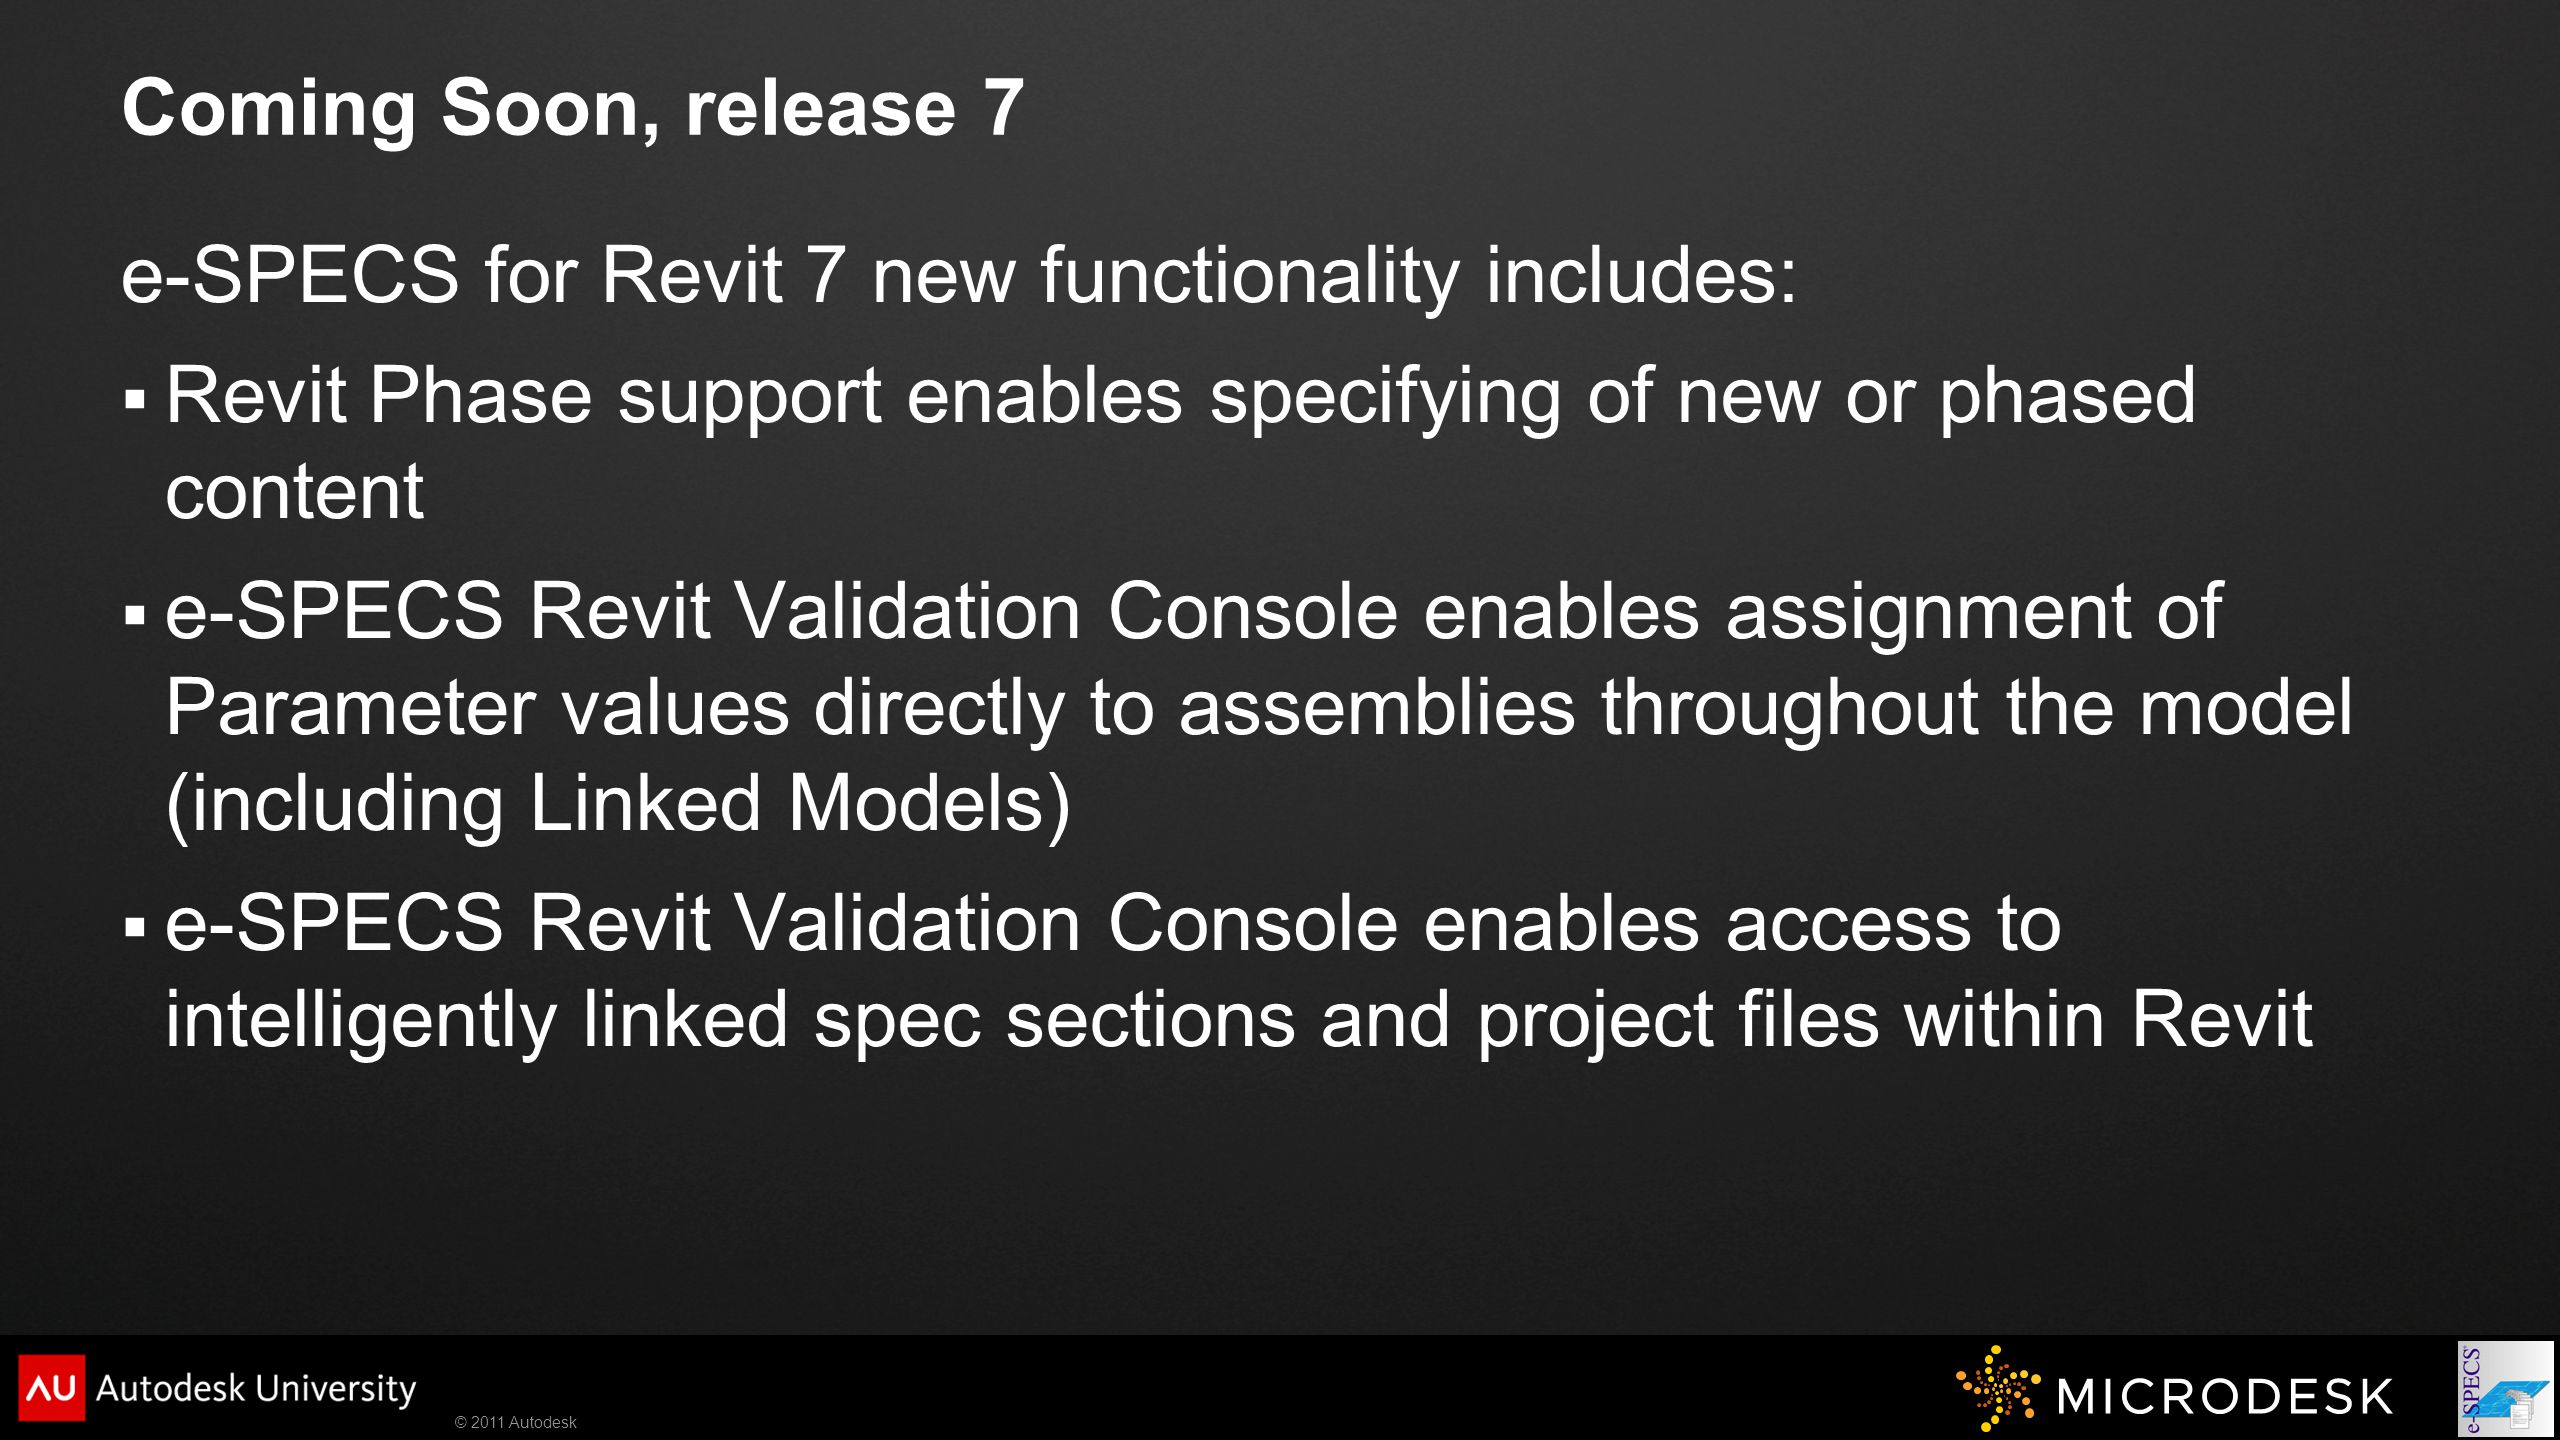 © 2011 Autodesk Coming Soon, release 7 e-SPECS for Revit 7 new functionality includes:  Revit Phase support enables specifying of new or phased content  e-SPECS Revit Validation Console enables assignment of Parameter values directly to assemblies throughout the model (including Linked Models)  e-SPECS Revit Validation Console enables access to intelligently linked spec sections and project files within Revit